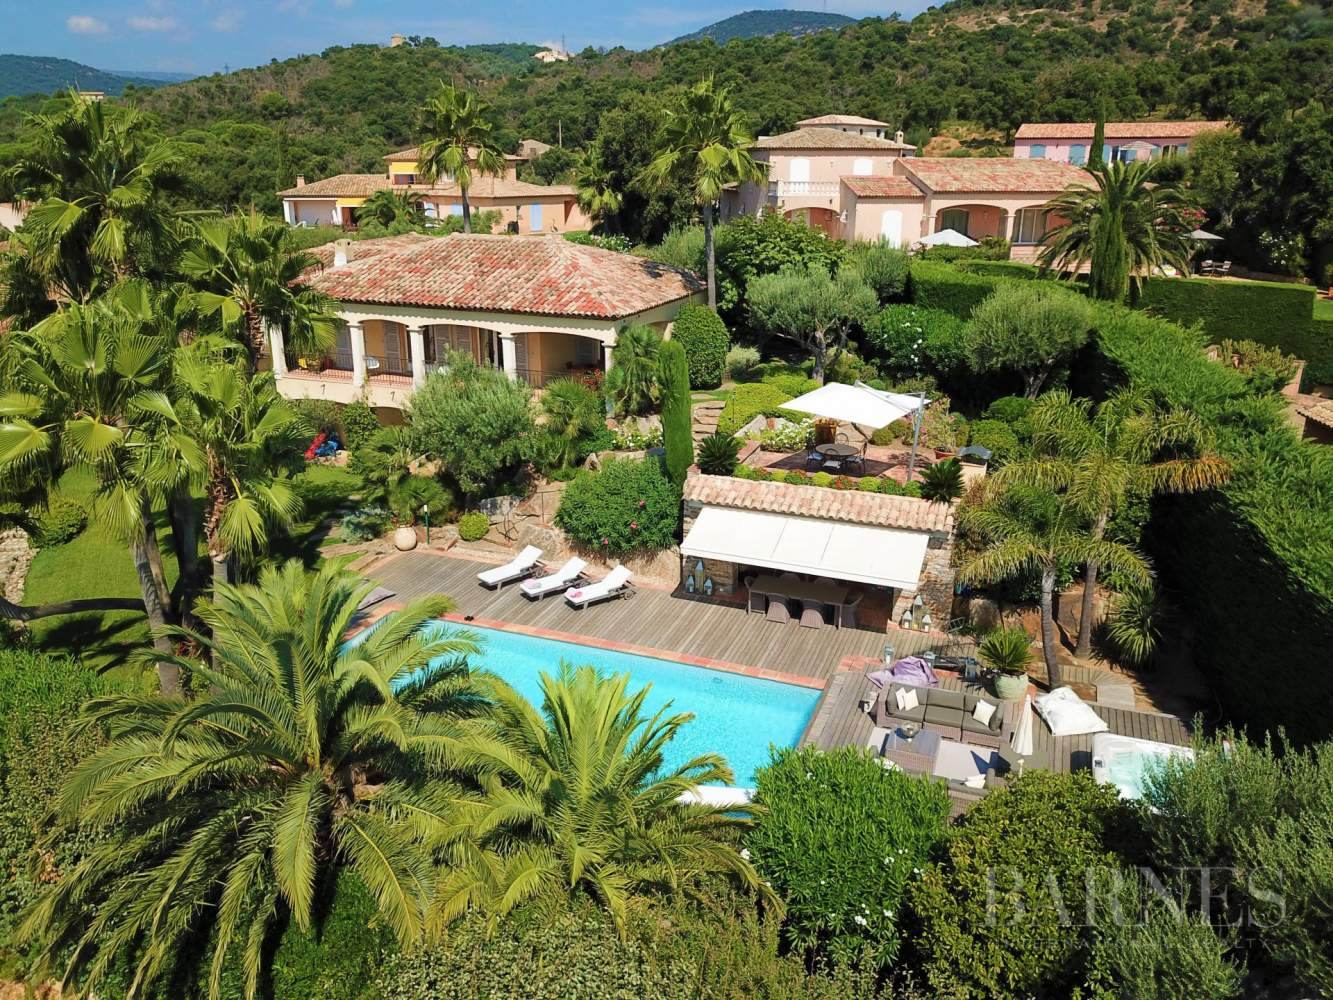 GRIMAUD - Beautiful villa with views of the countryside picture 6